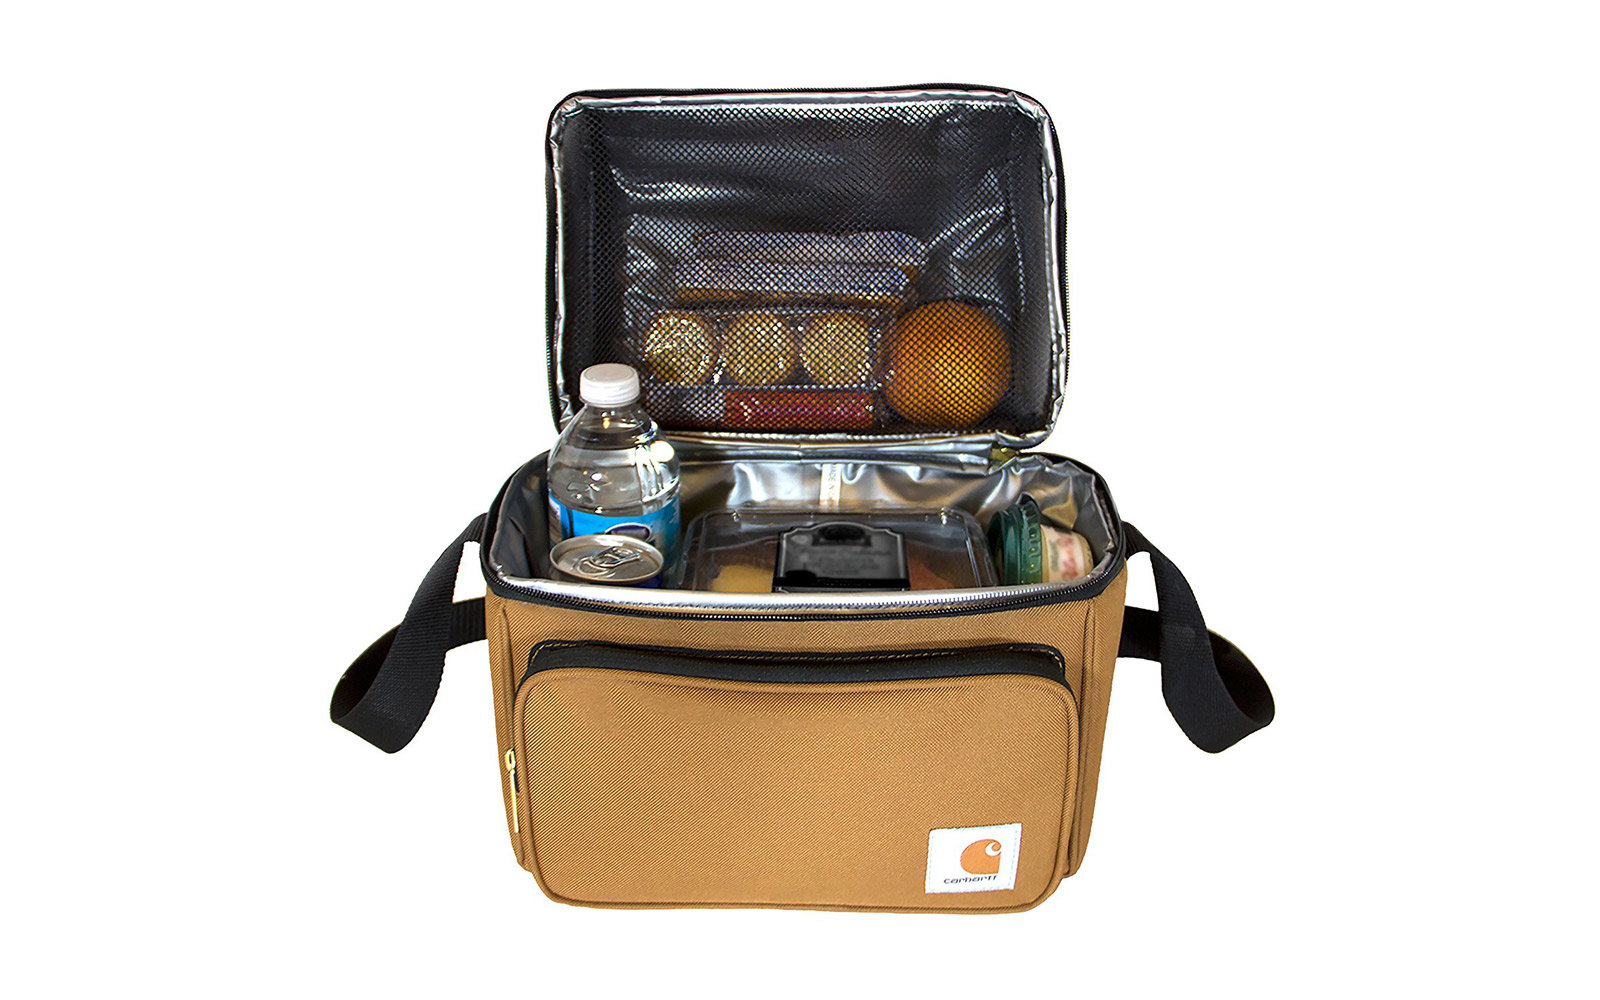 0ae5e172b233 Carhartt Deluxe Dual Compartment Insulated Lunch Cooler Bag